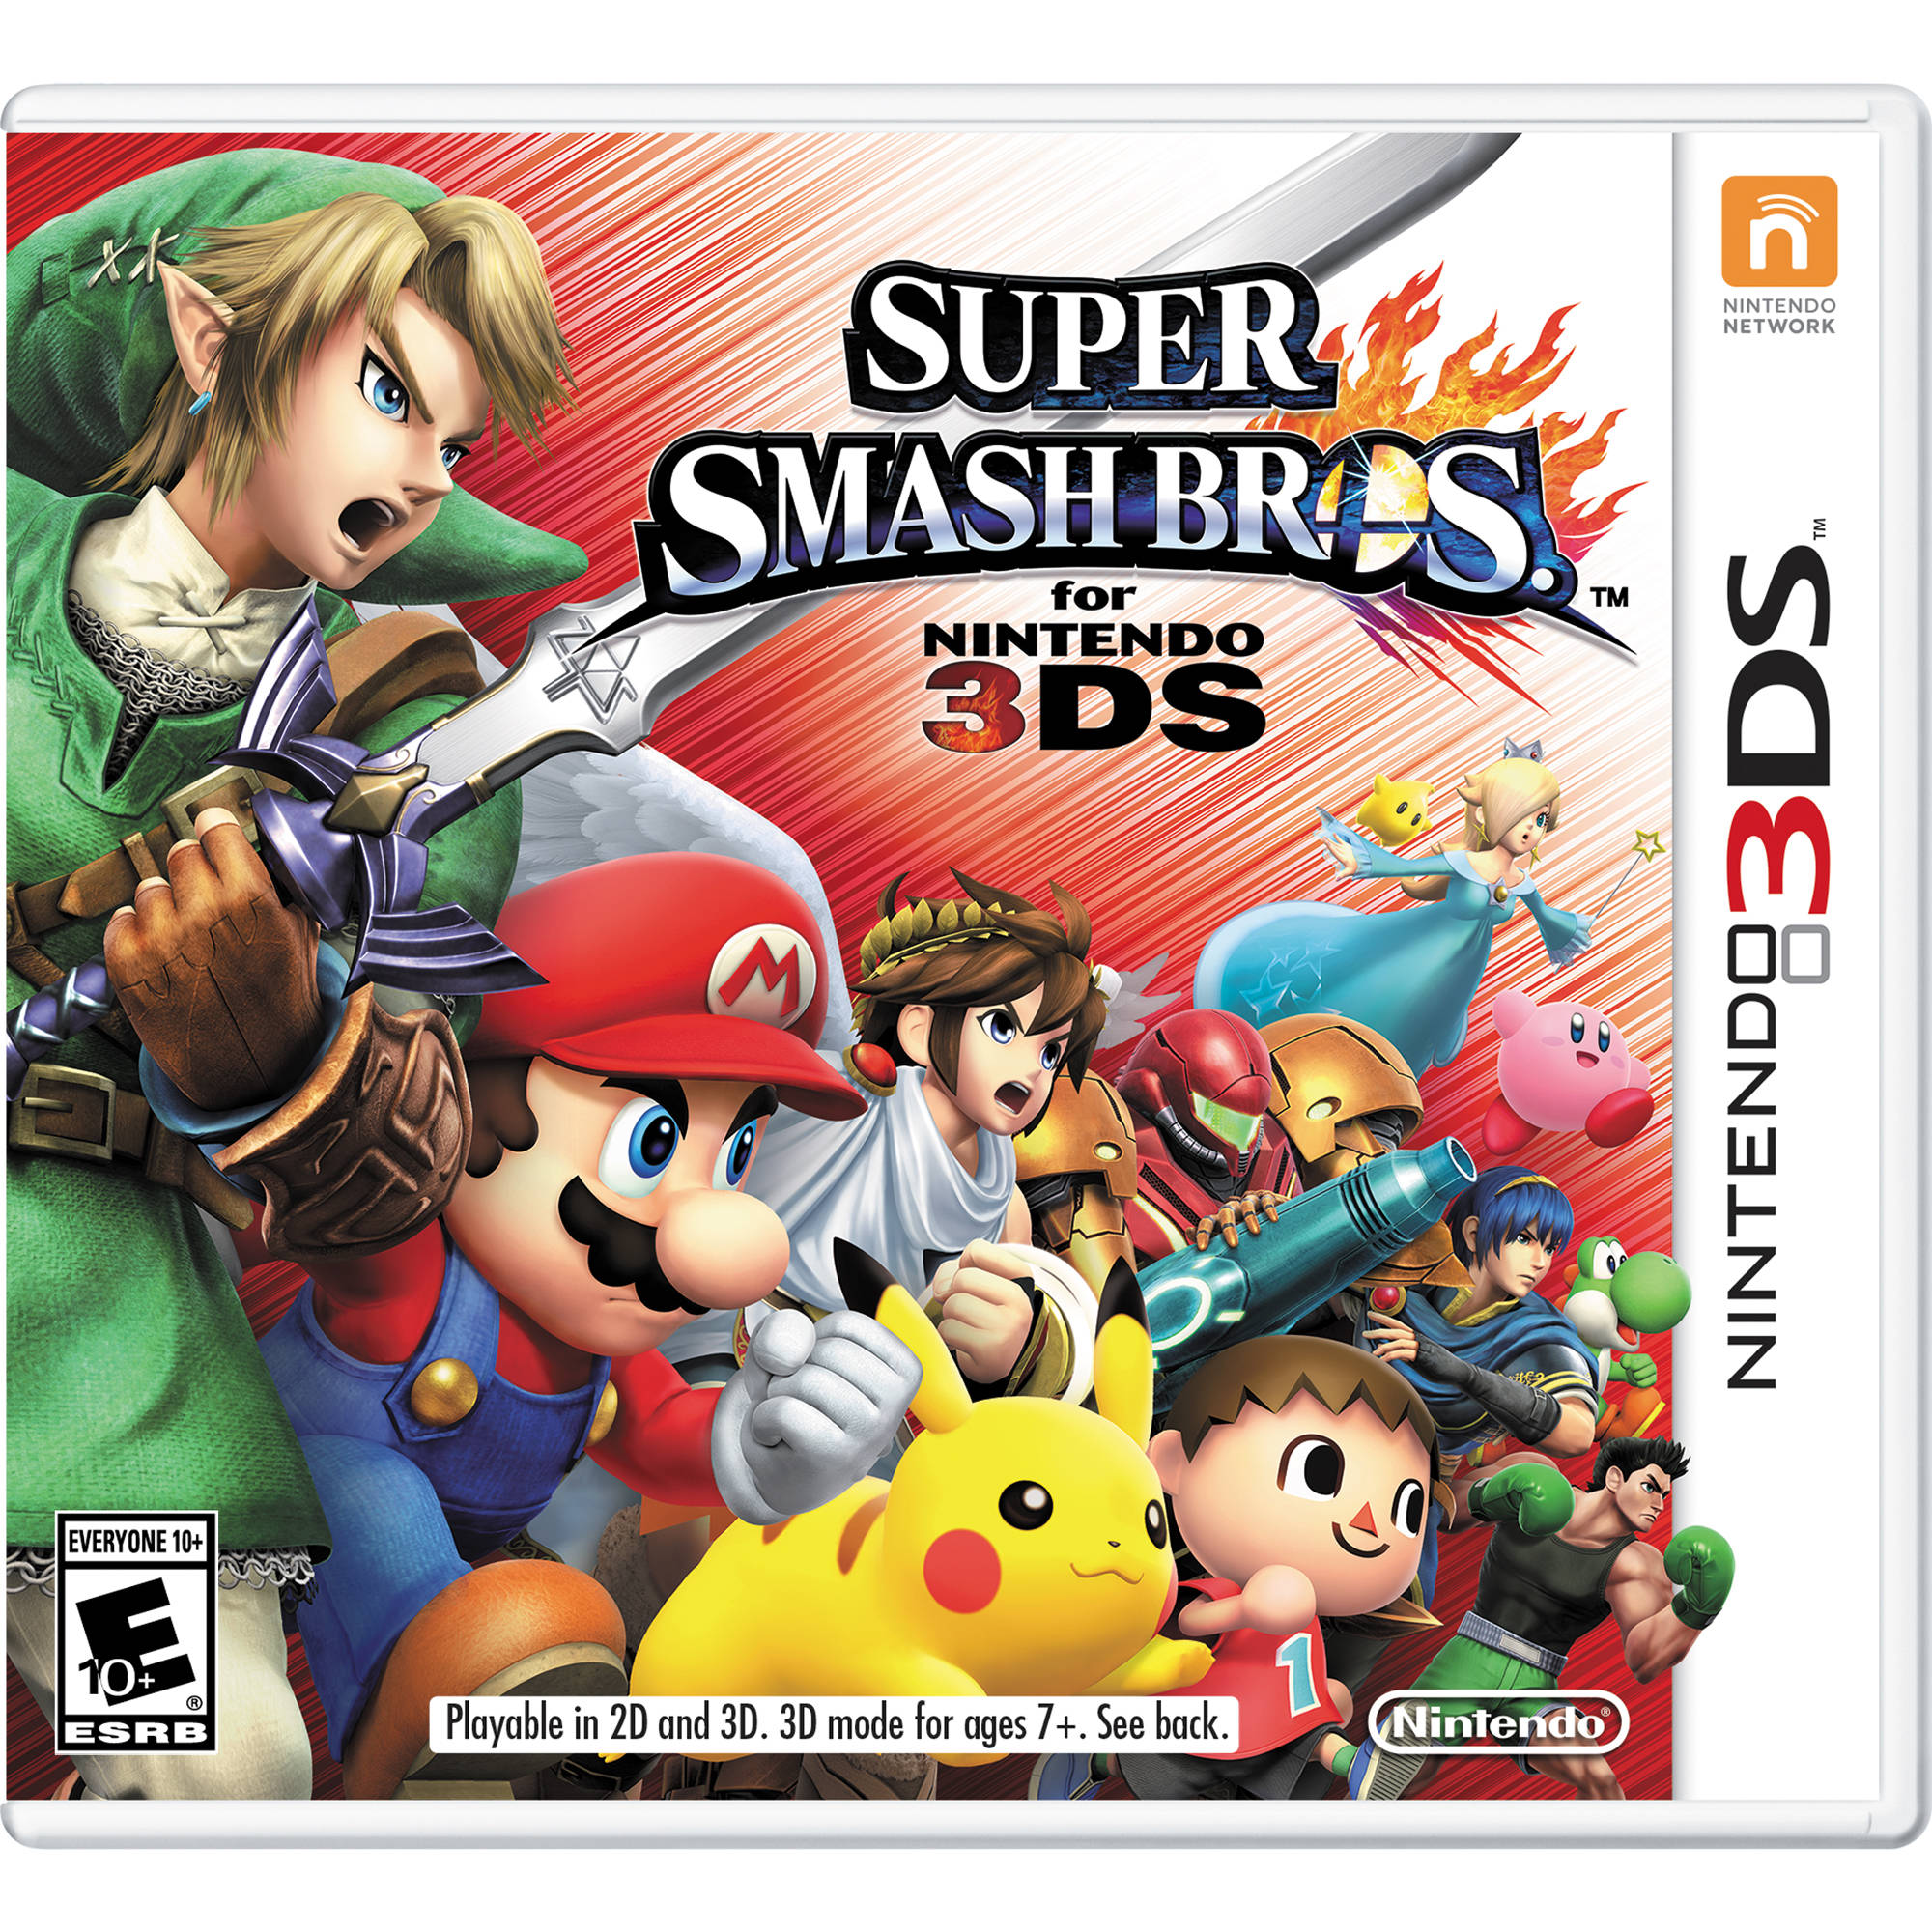 Nintendo Super Smash Bros. (Nintendo 3DS) CTRPAXCE B&H Photo